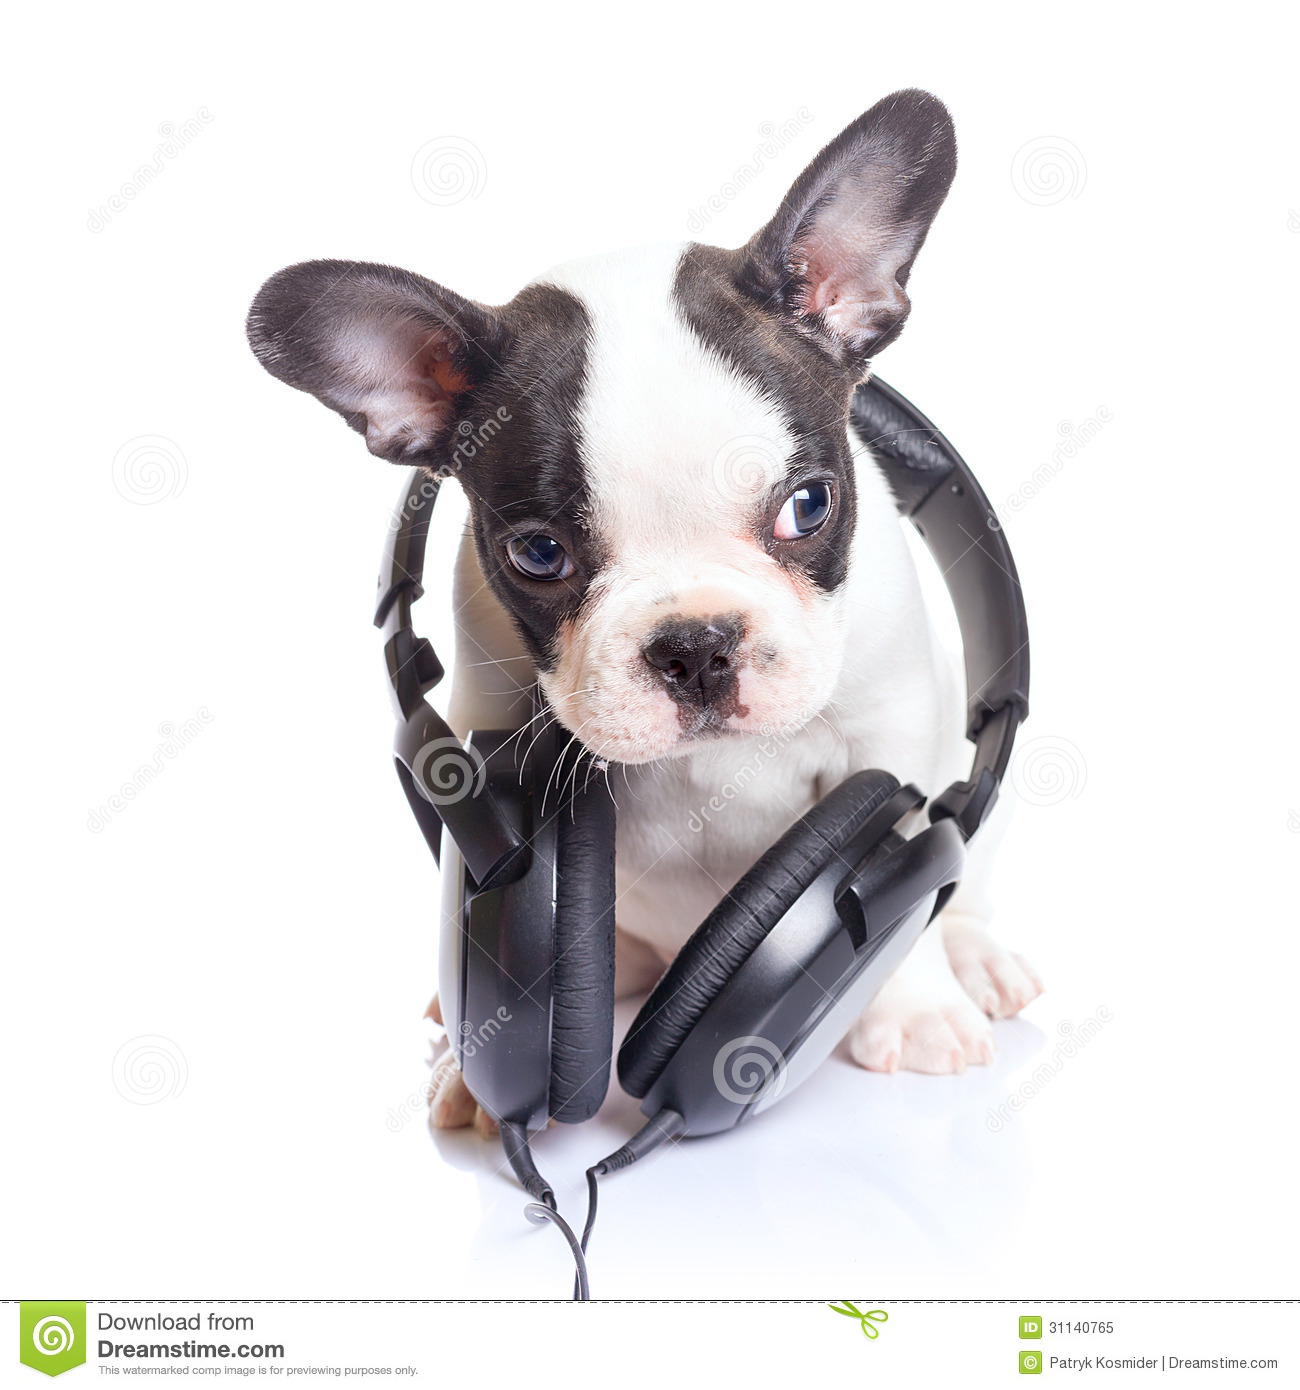 Cute Earphones Wallpaper French Bulldog Puppy With Headphones Stock Image Image